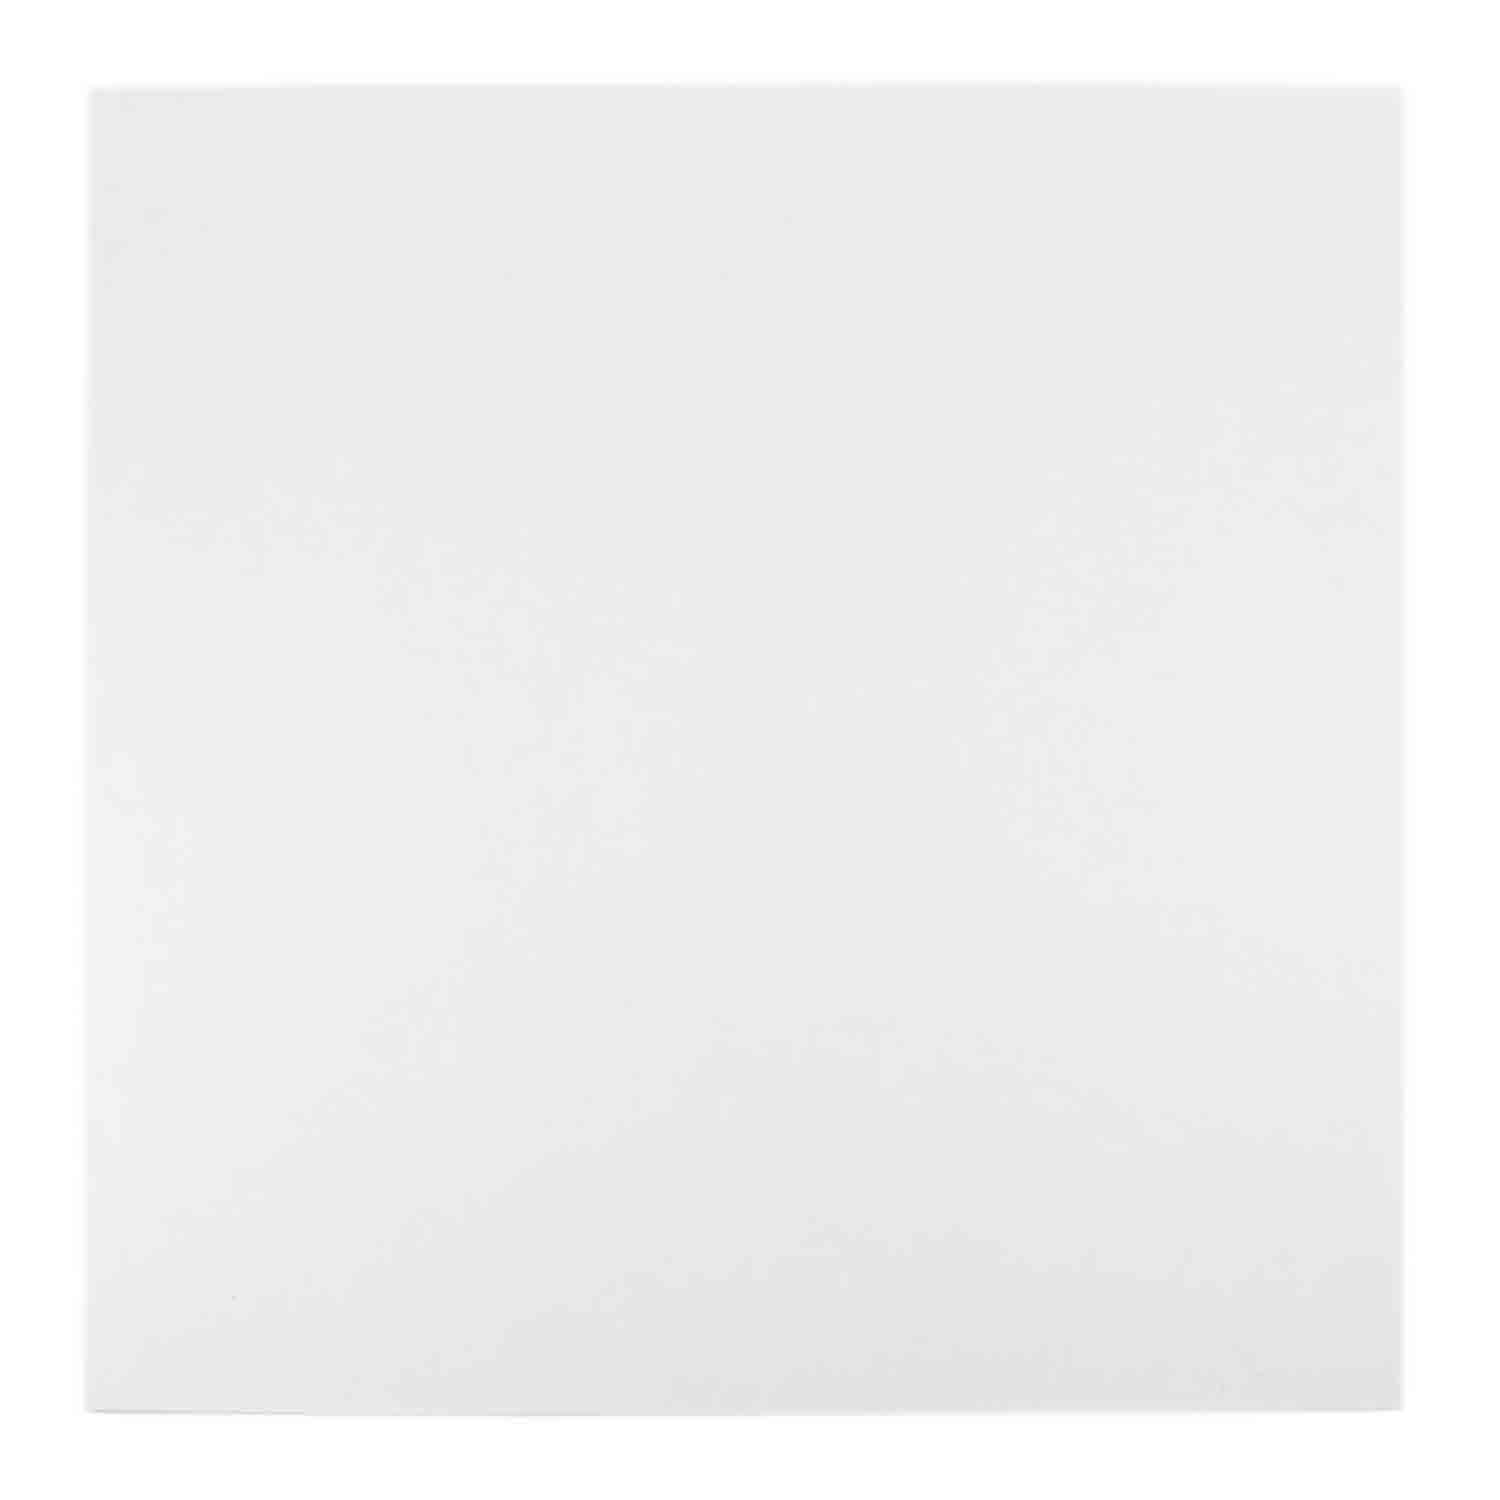 "14"" Square White Foil Sturdy Board"